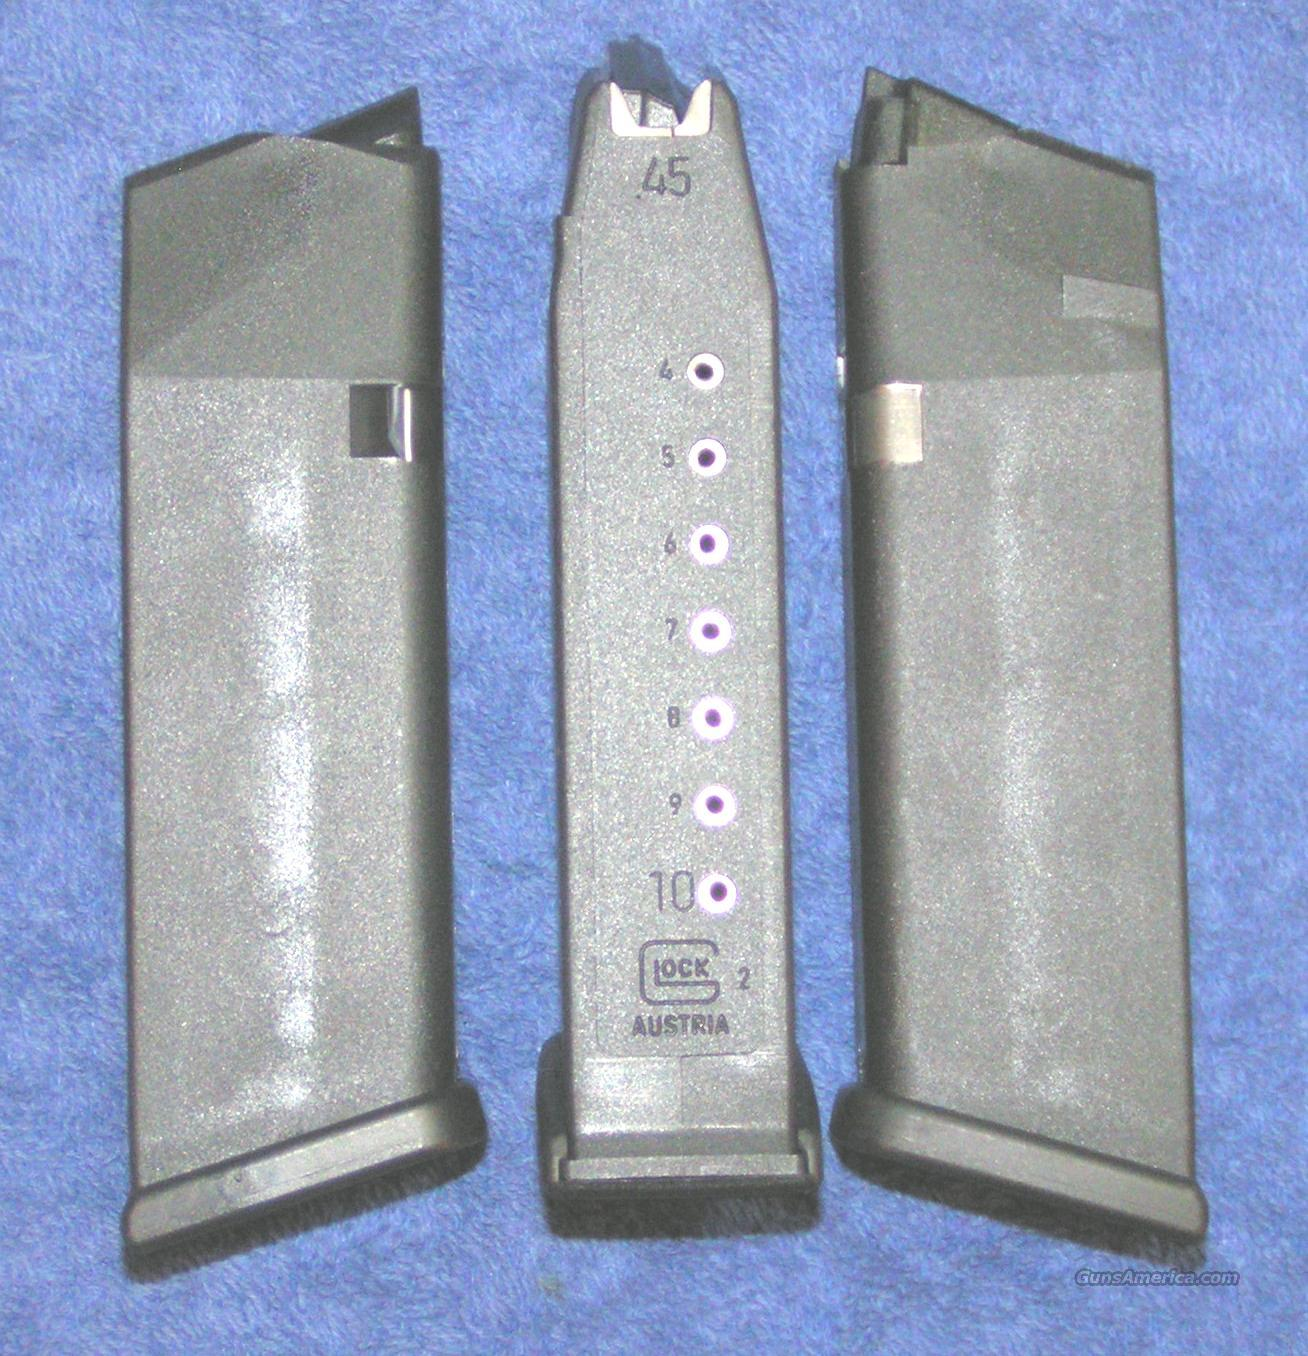 3 Glock 21 mags 10 rd 45ACP factory new 4th Gen.  $35 each  Non-Guns > Magazines & Clips > Pistol Magazines > Glock